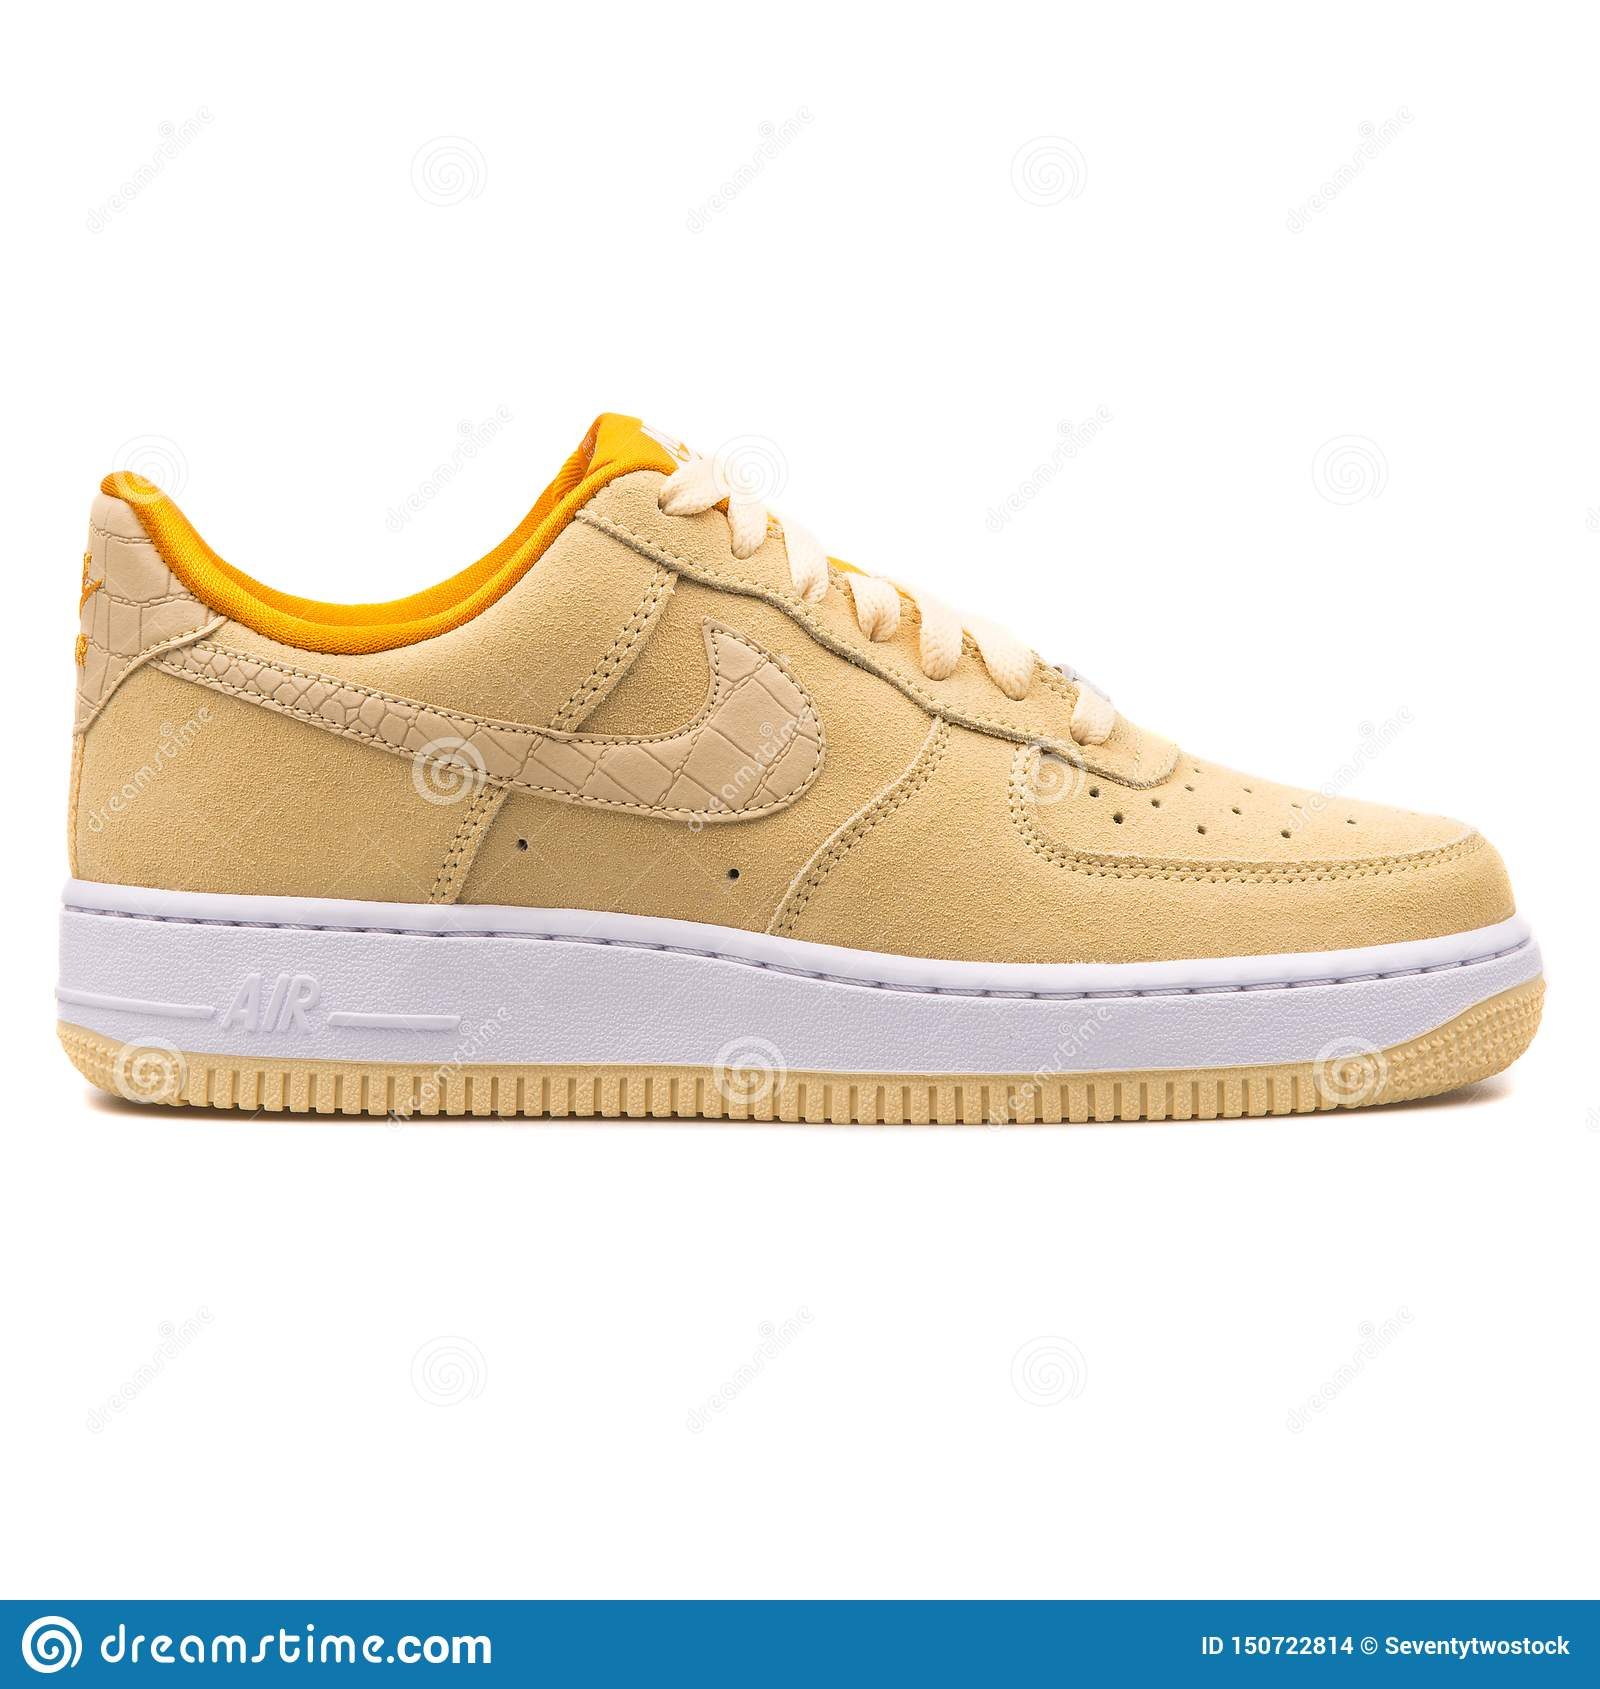 Nike Air Force 1 Scarpa Da Tennis Giallo Limone Stagionale